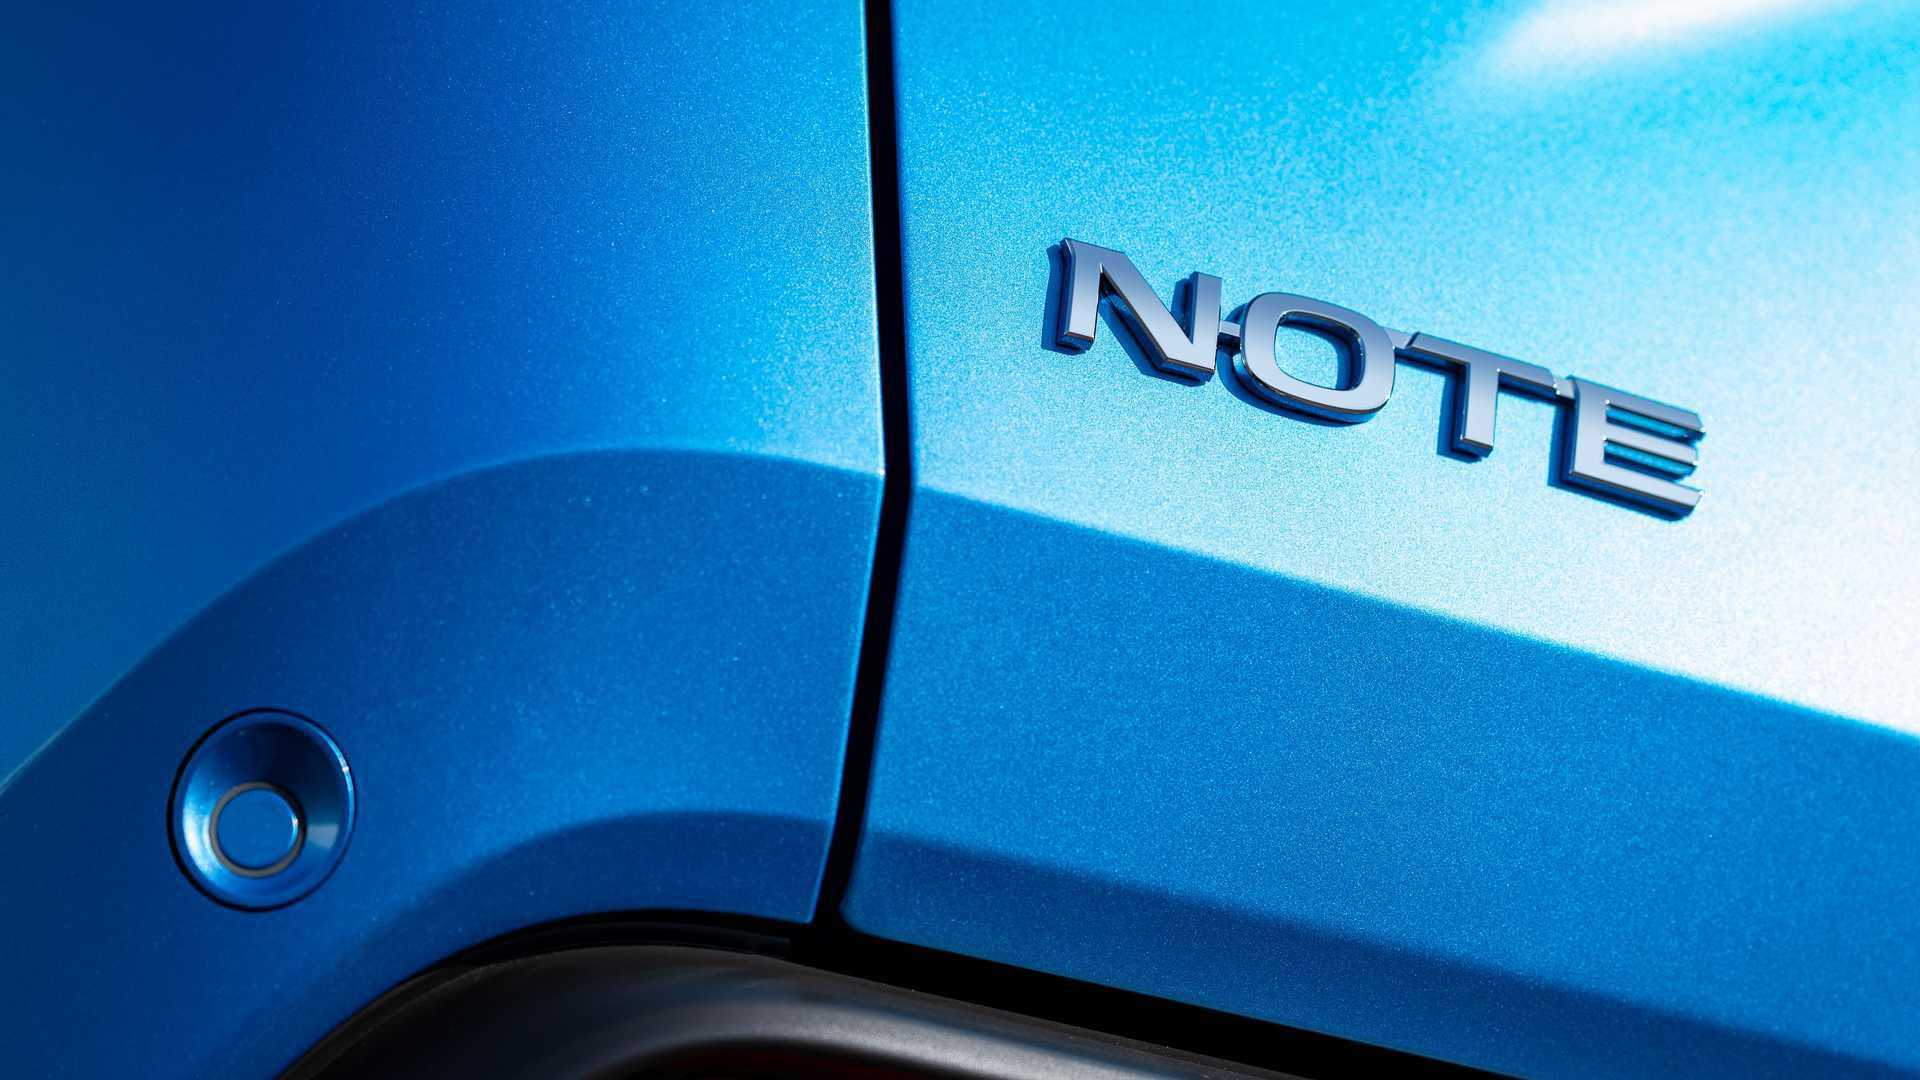 2021_Nissan_Note_0065